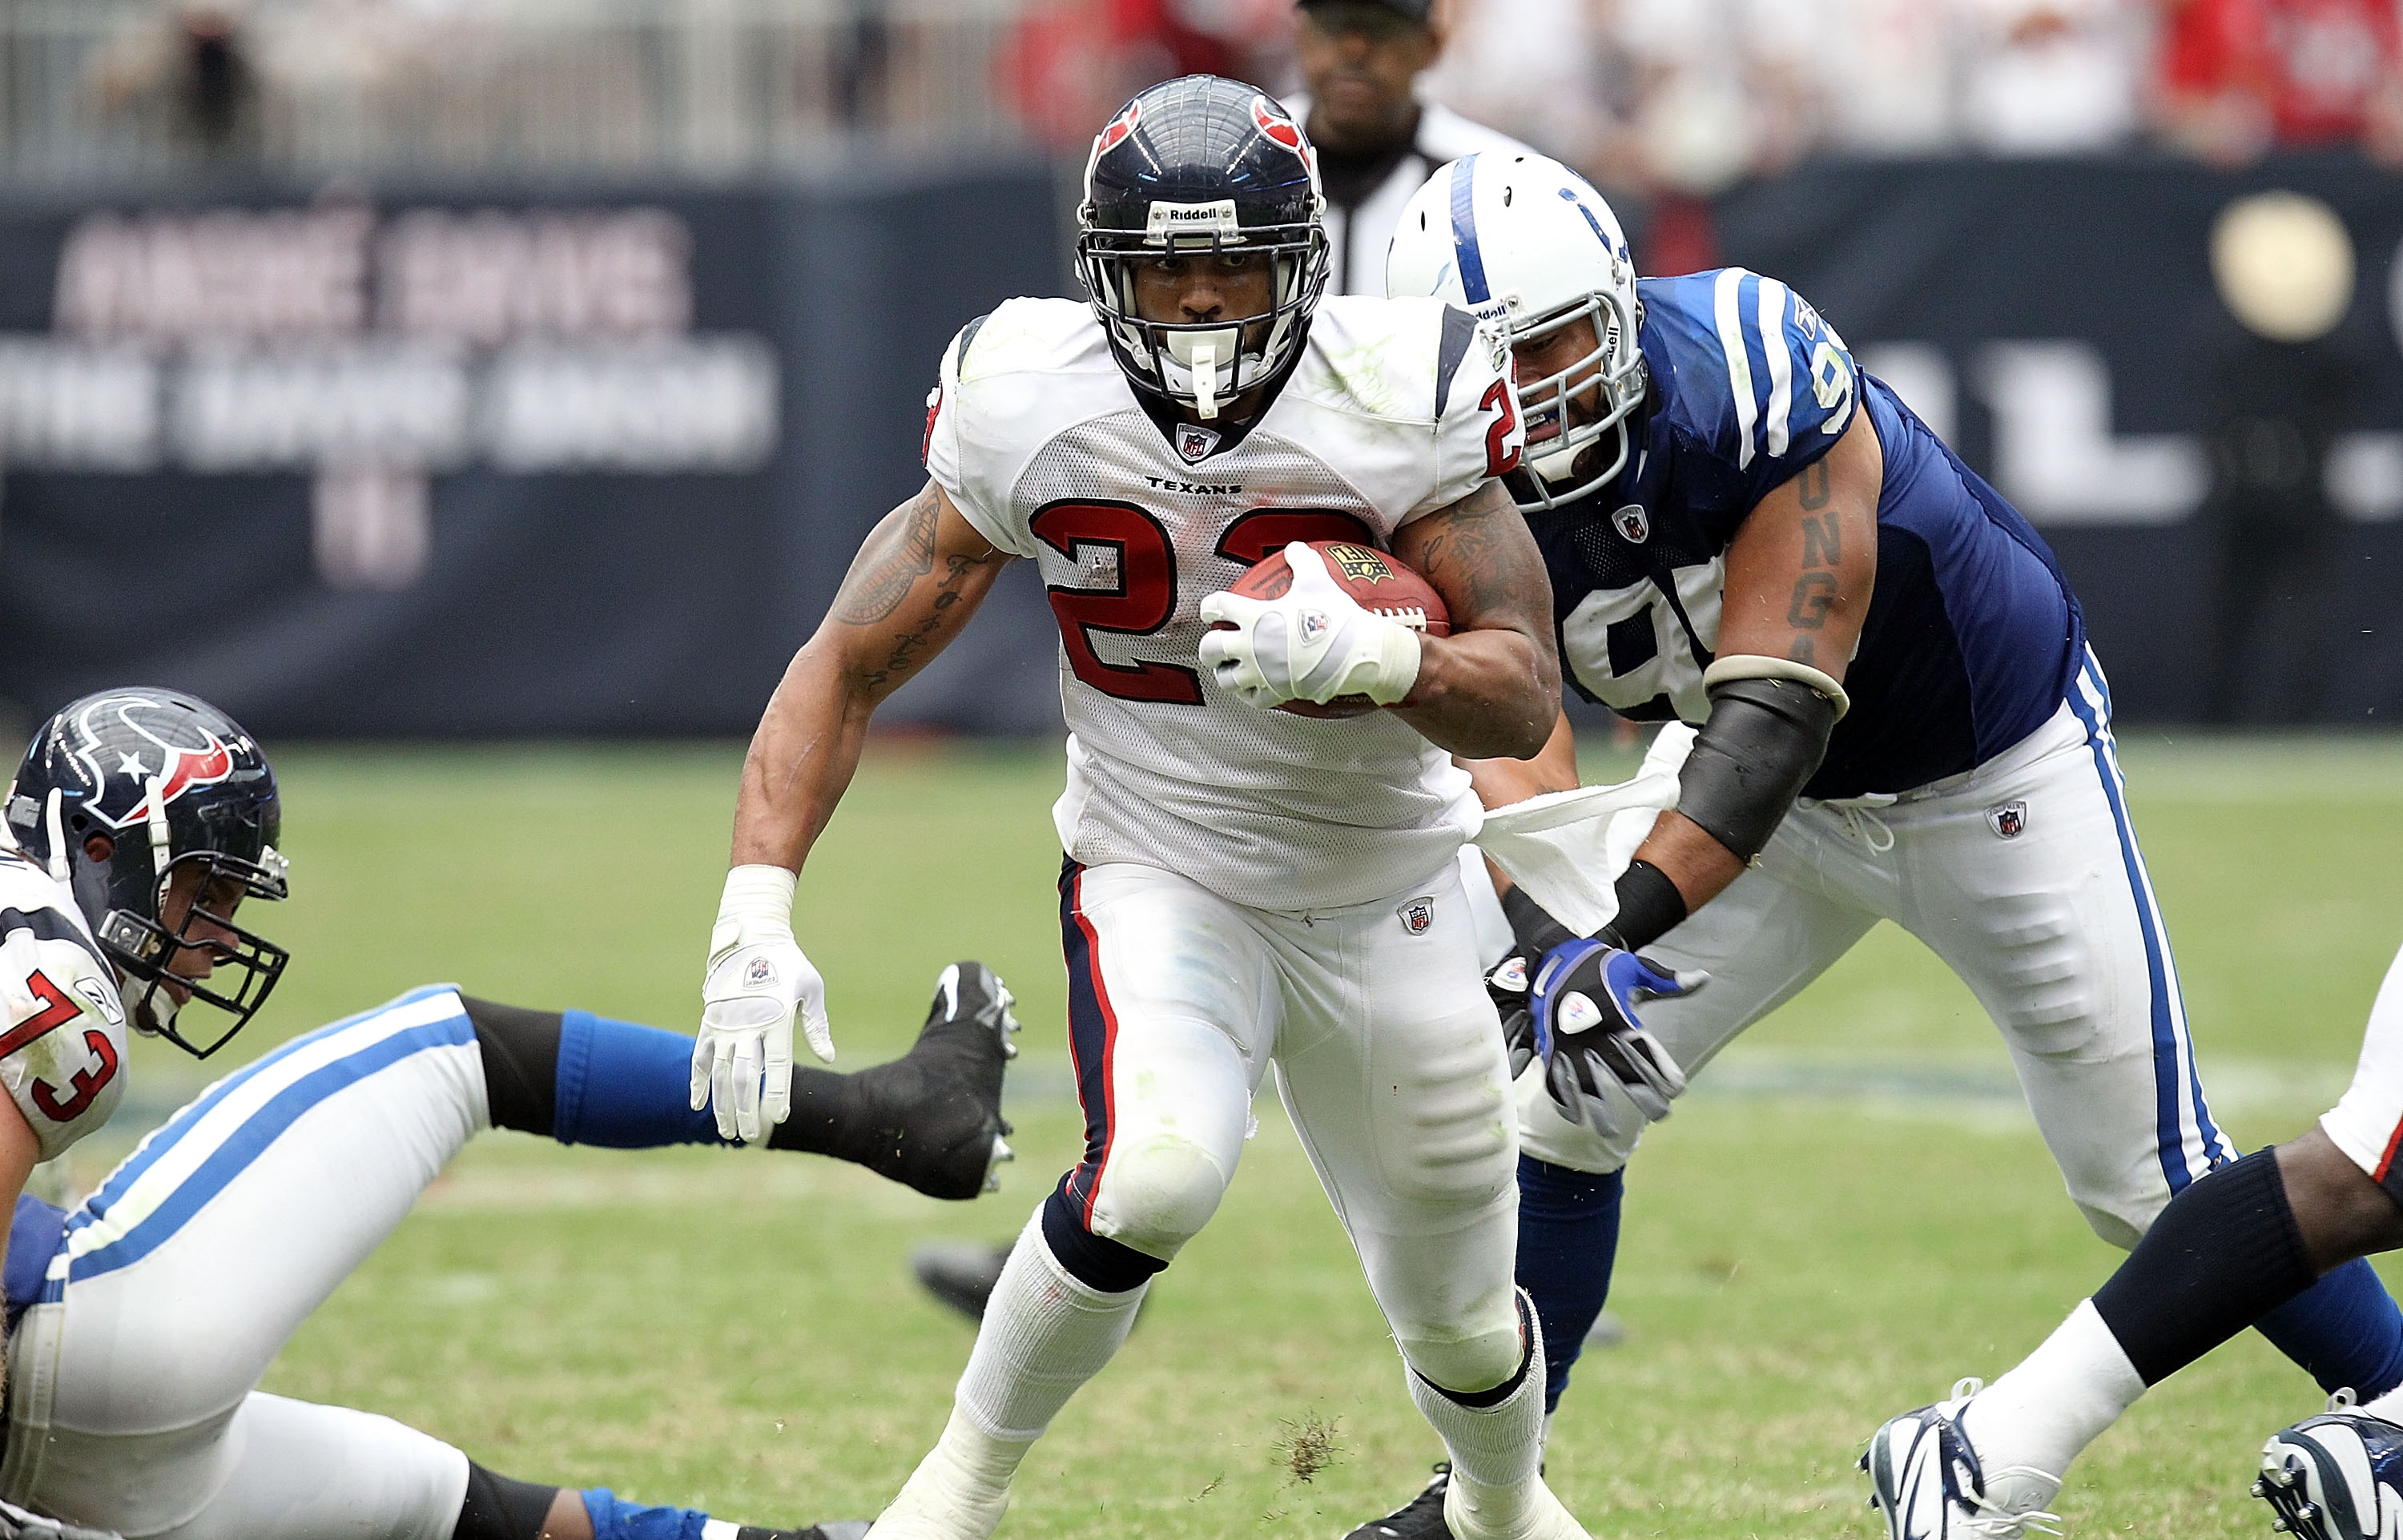 HOUSTON - SEPTEMBER 12:  Running back Arian Foster #23 of the Houston Texans runs in the NFL season opener against the Indianapolis Colts at Reliant Stadium on September 12, 2010 in Houston, Texas.  (Photo by Ronald Martinez/Getty Images)